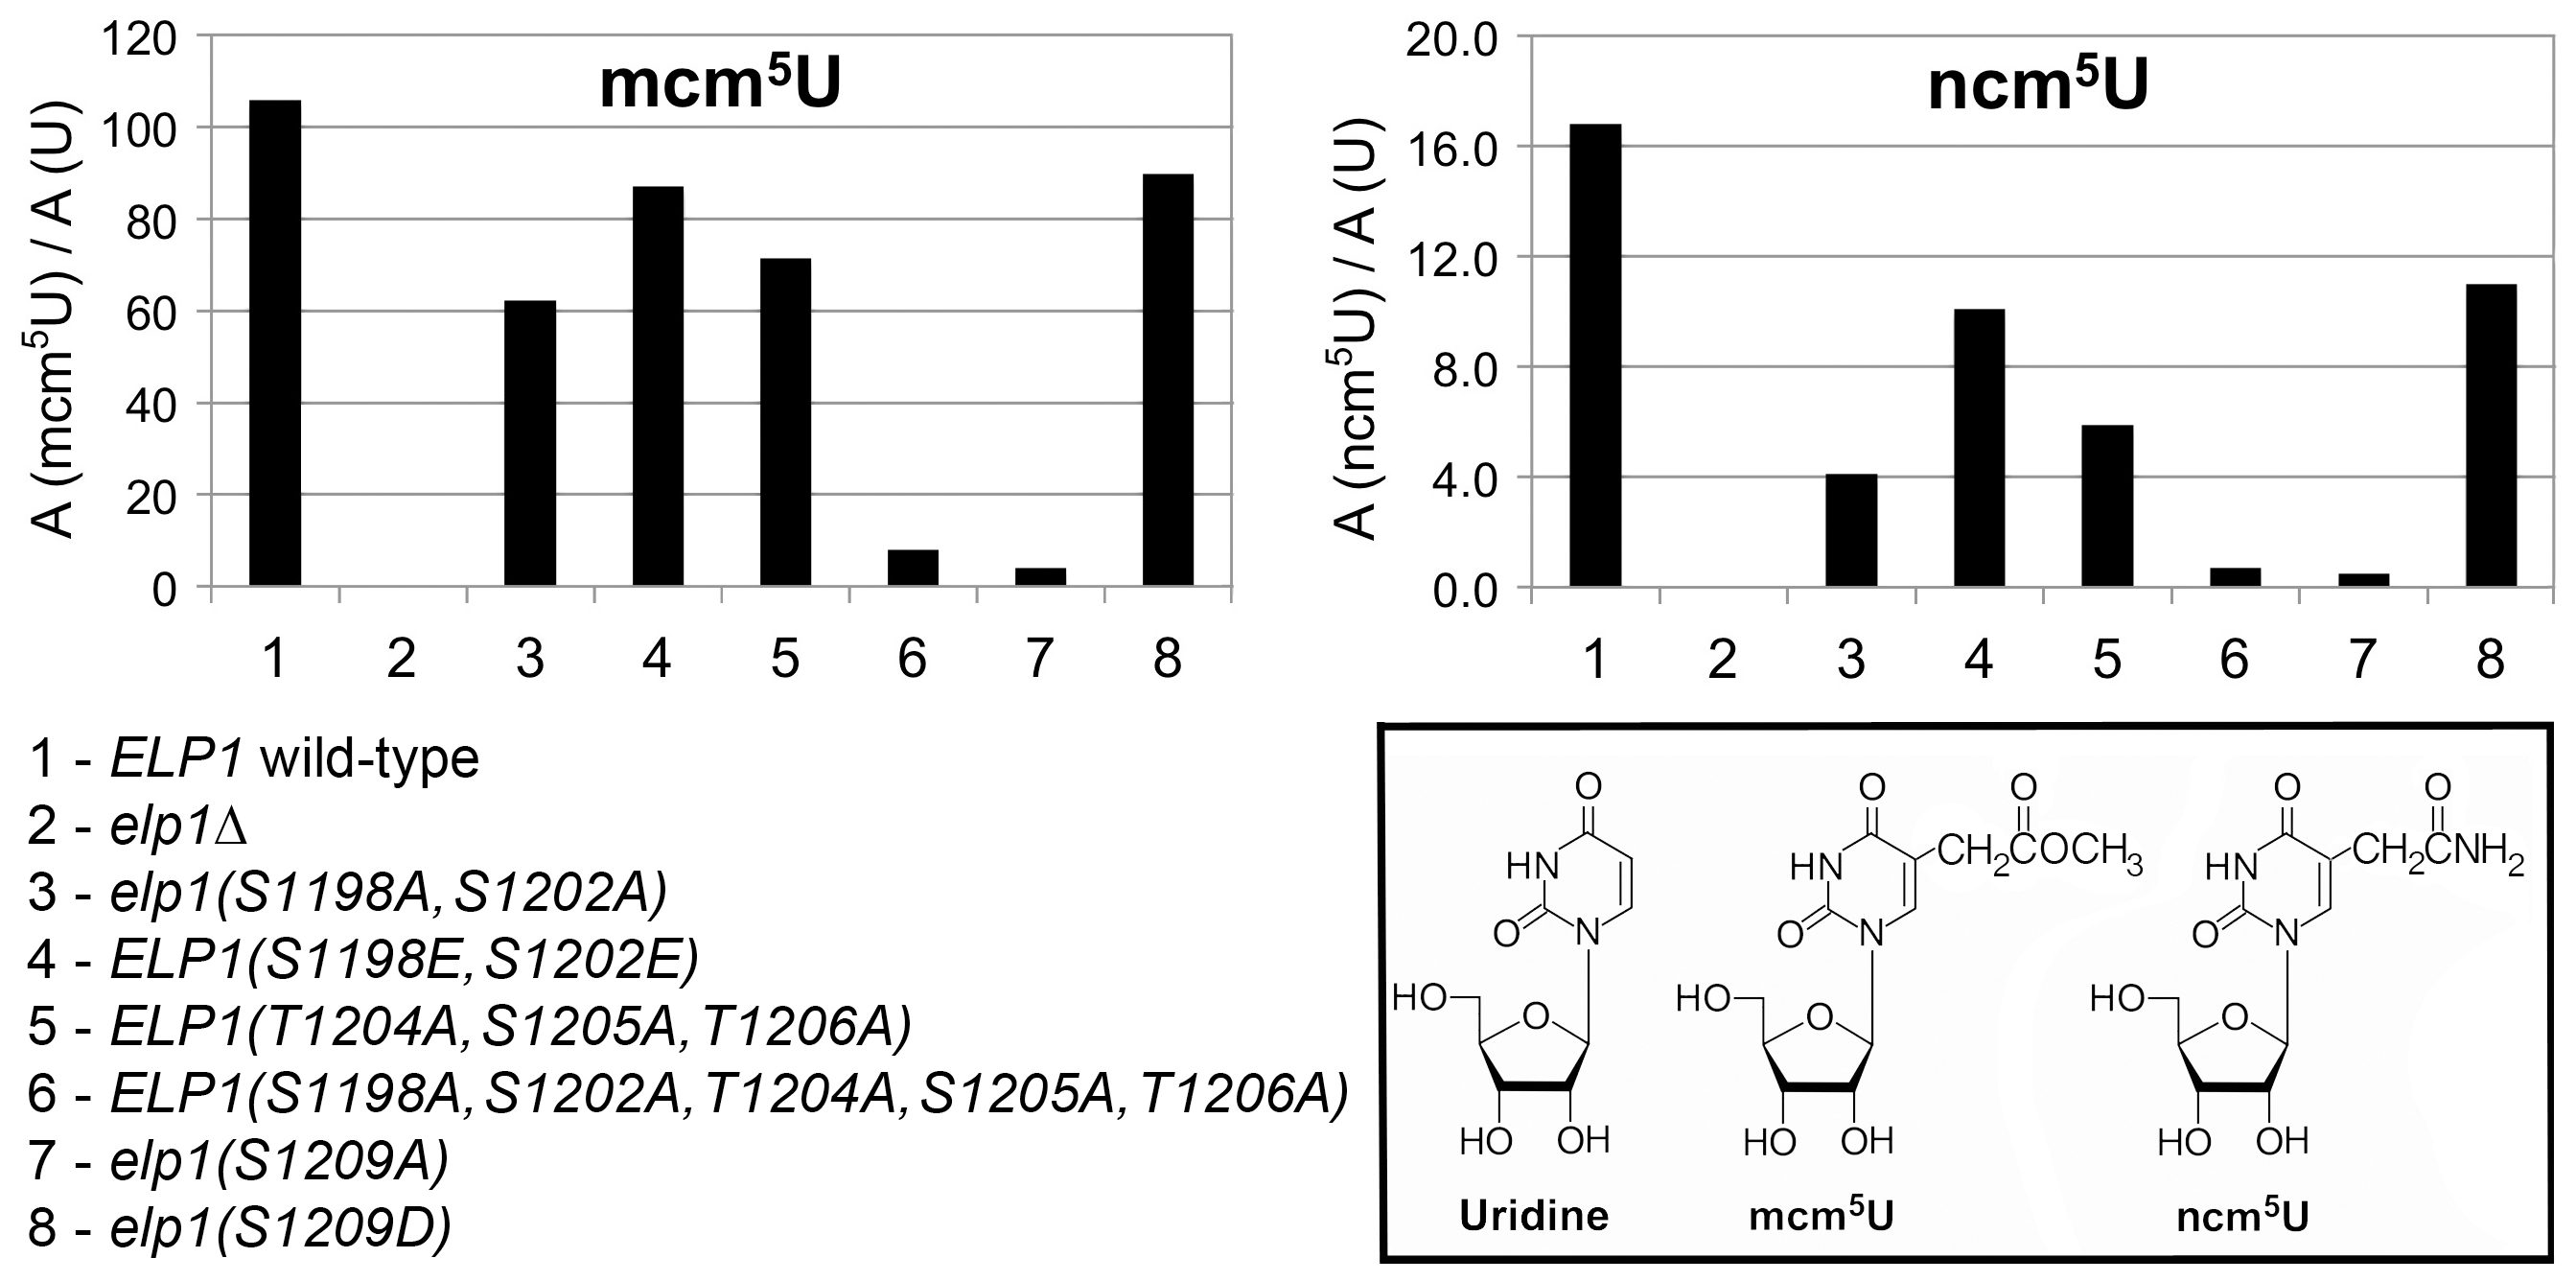 Quantitation of modified U34 nucleosides in tRNA from selected <i>elp1</i> mutants.